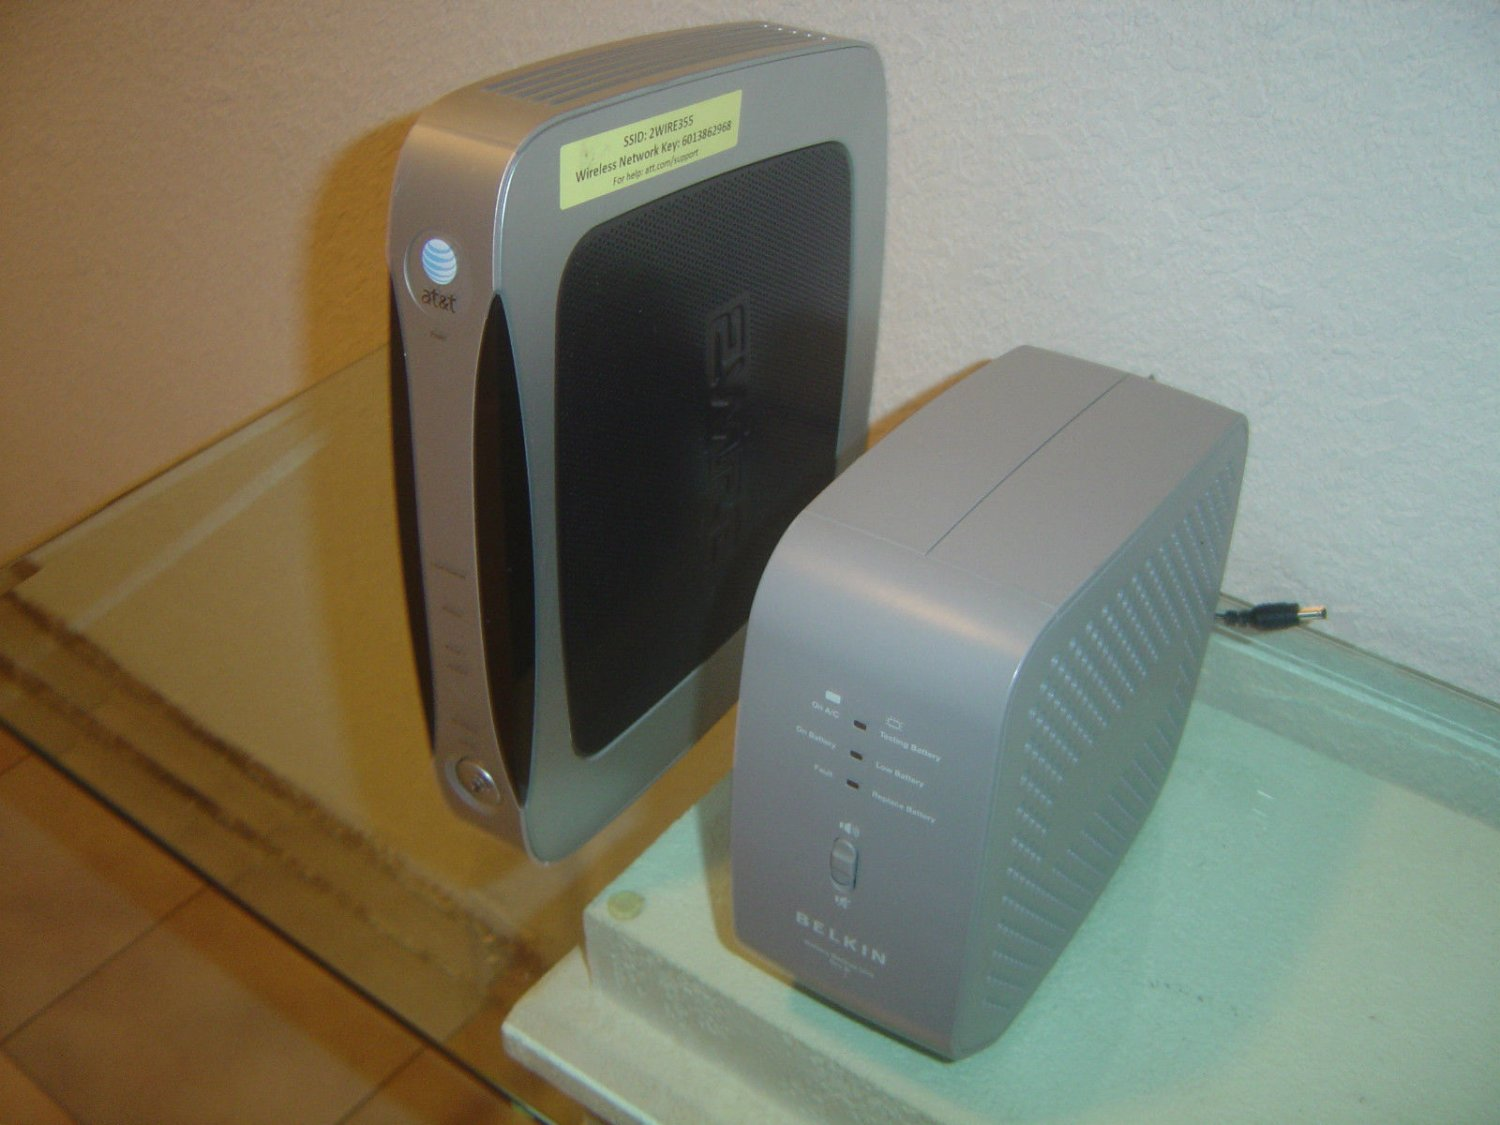 AT&T 2WIRE MODEM WIRELESS G ROUTER 3600HGV BELKIN BATTERY BACK-UP ...